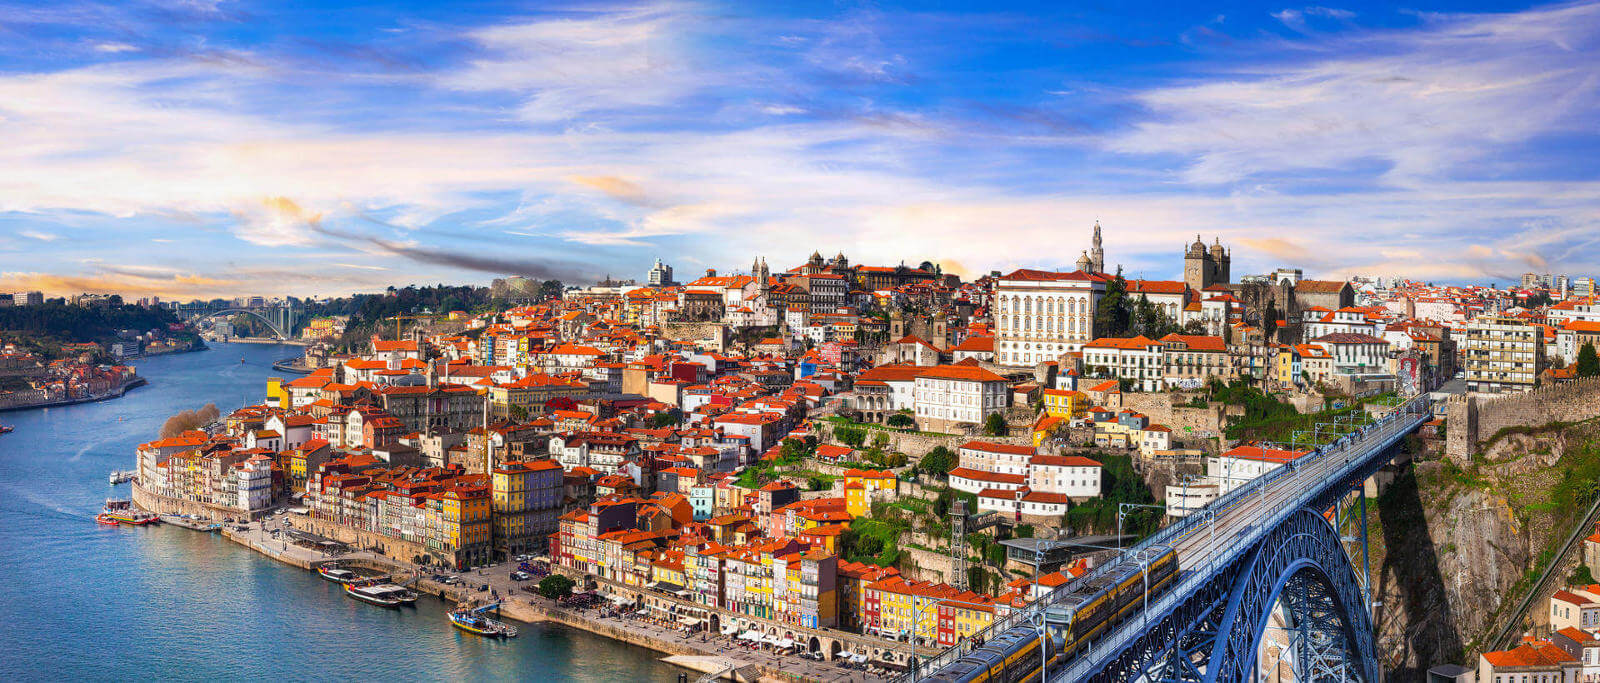 River Cruise & Wine Tasting in Oporto